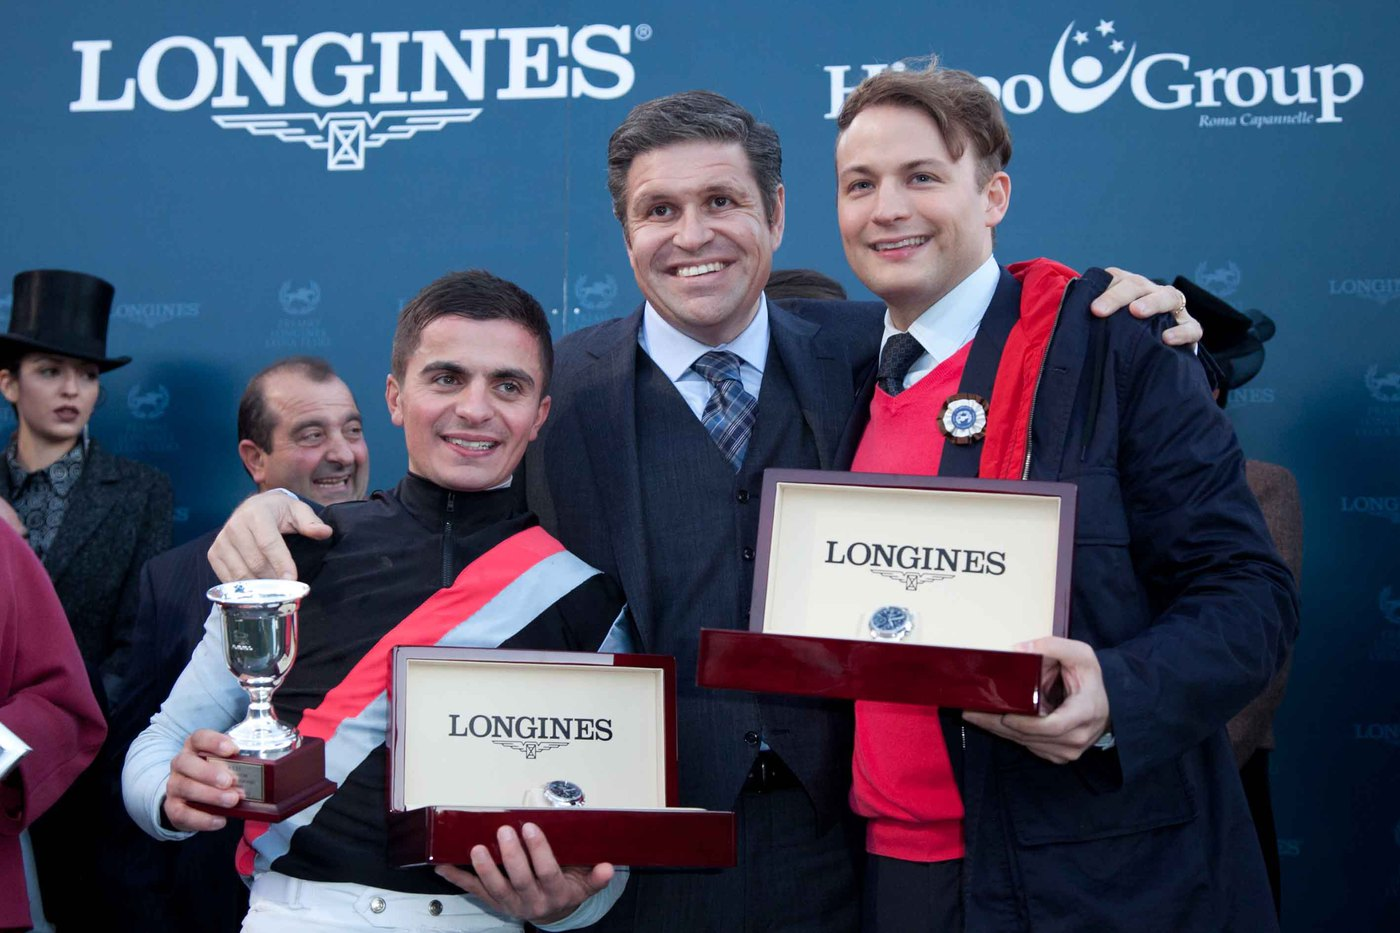 Longines Flat Racing Event: Andrea Atzeni wins the Grand Prix Longines Lydia Tesio on Sortilege 3